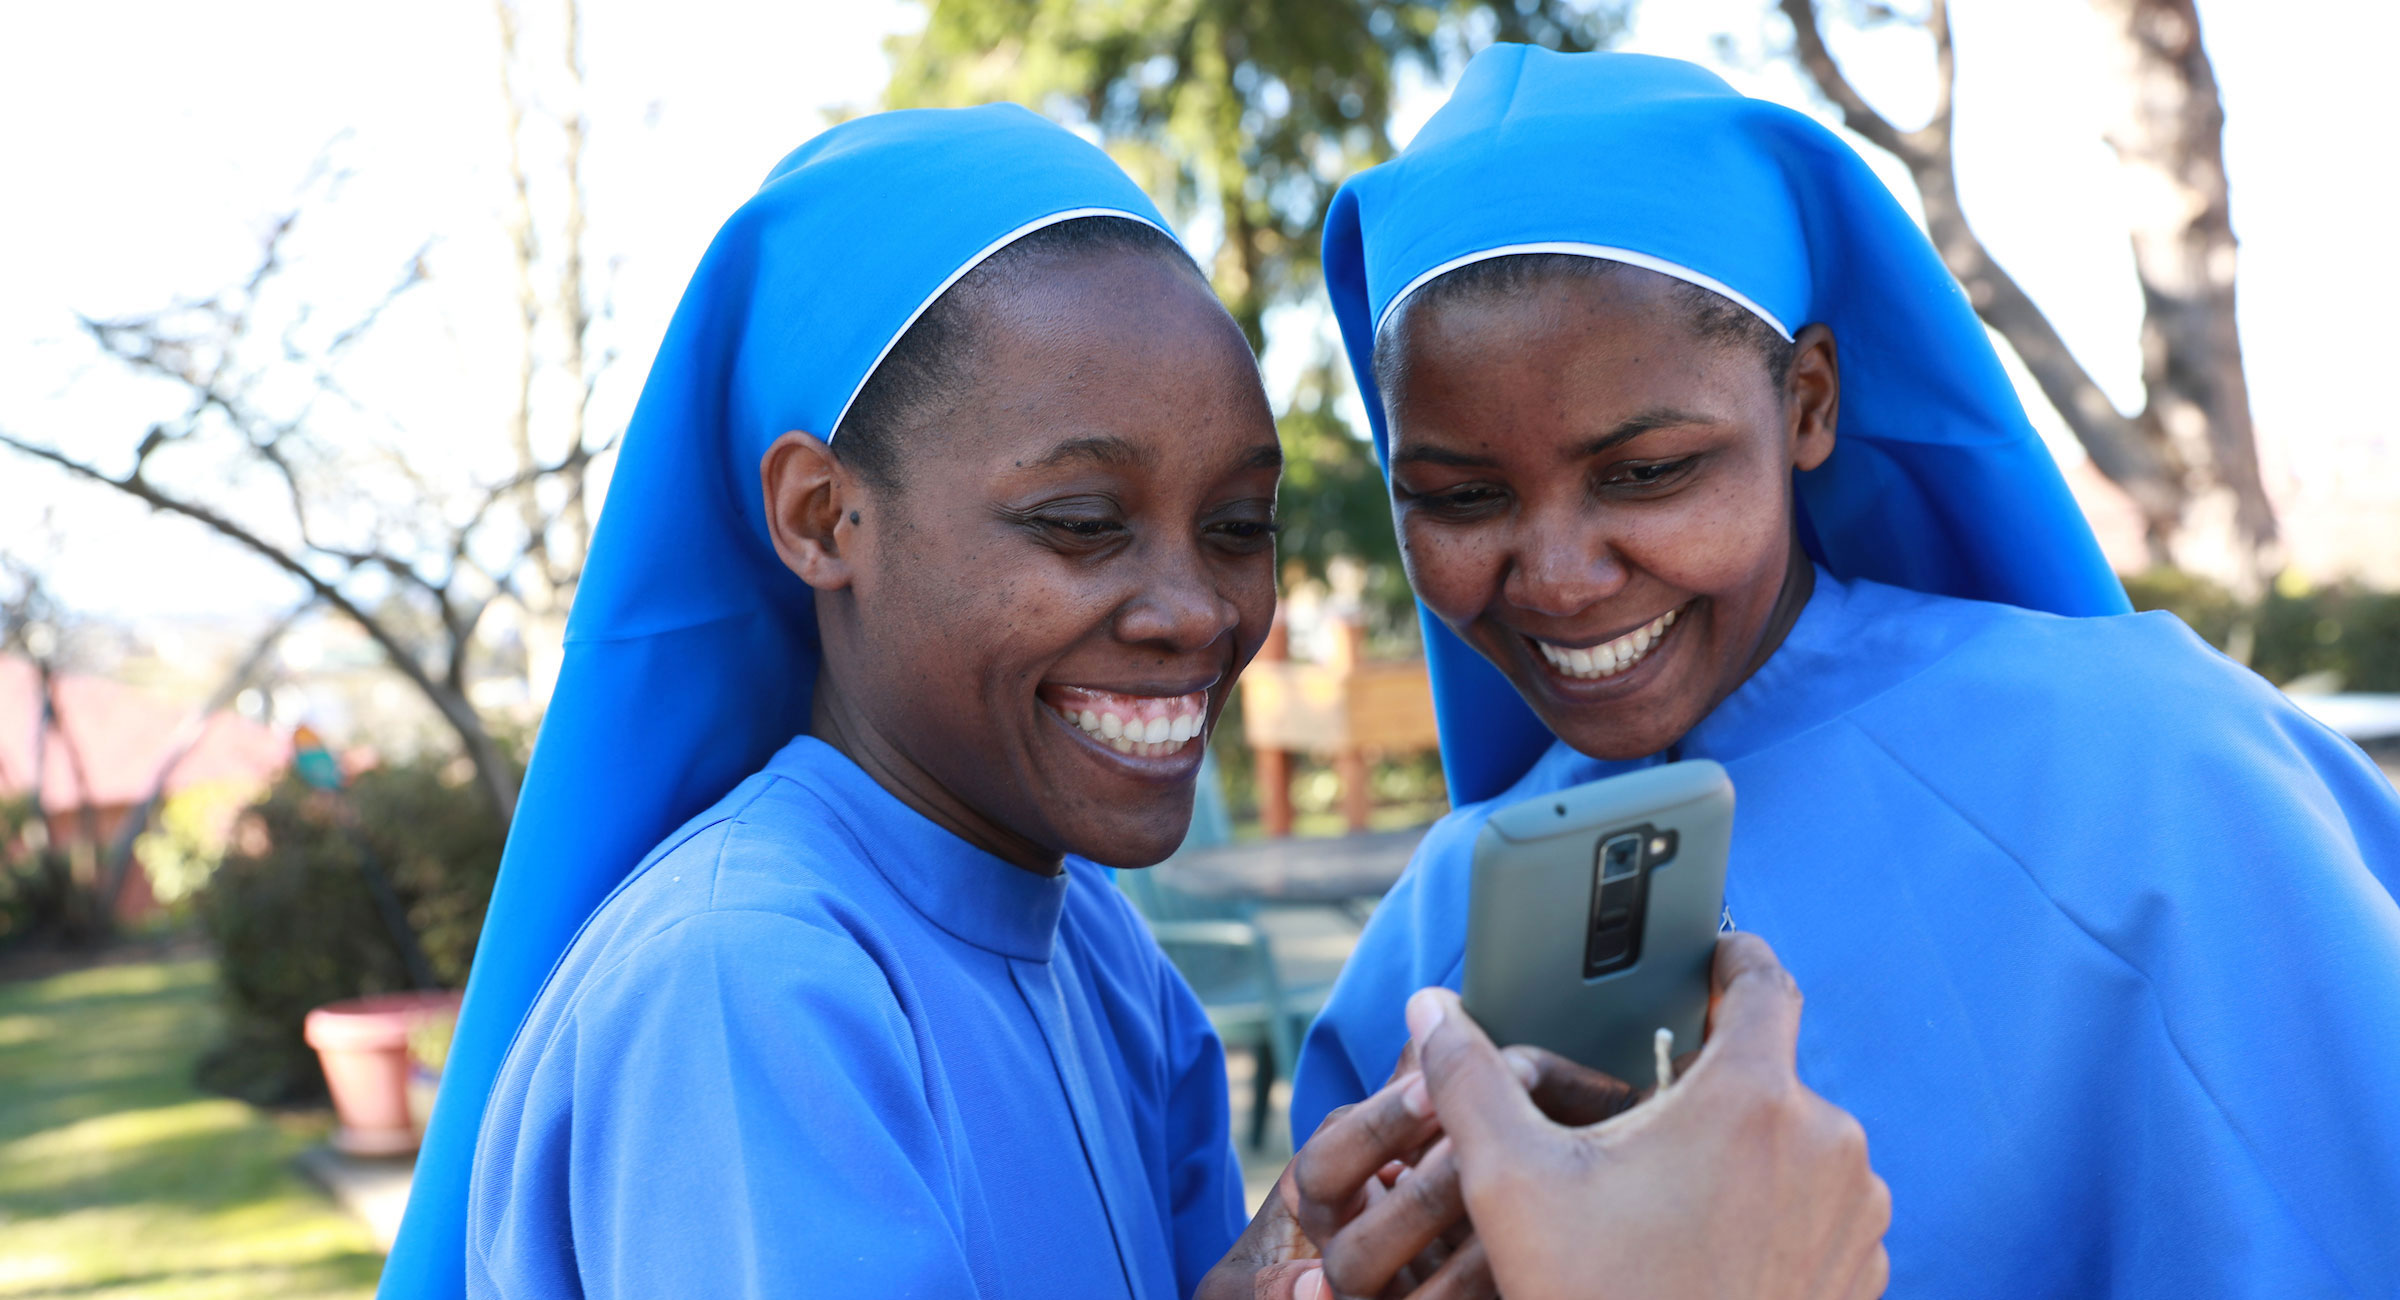 Sister Mary Namutebi, DM, '20, '22, left and Sister Paskazia Ampronia Nakitende, DM, '19 with The Daughters of Mary Sisters in Uganda share a moment together while reviewing a selfie photo they took on their cell phone in the garden at their St. Joseph's Residence in West Seattle.